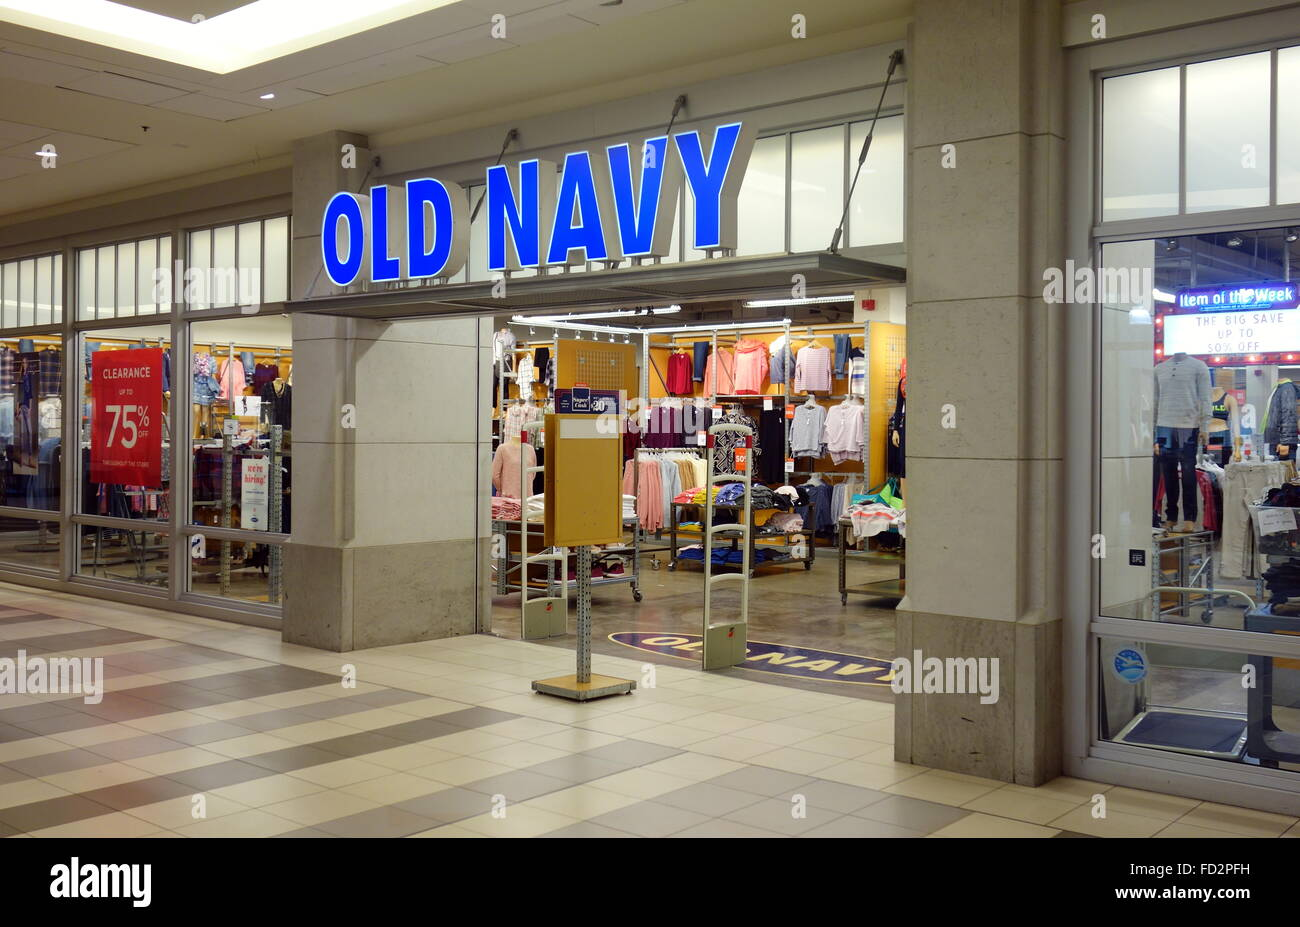 I wanted to go check this old navy old considering I'm new to this neighborhood. The store is a mess! there's never shopping carts available for those who have children I love old navy but this place needs help attending to there customers needs.. remember make the customer feel welcomed move the lines faster and you'll have loyal customers 3/5(42).